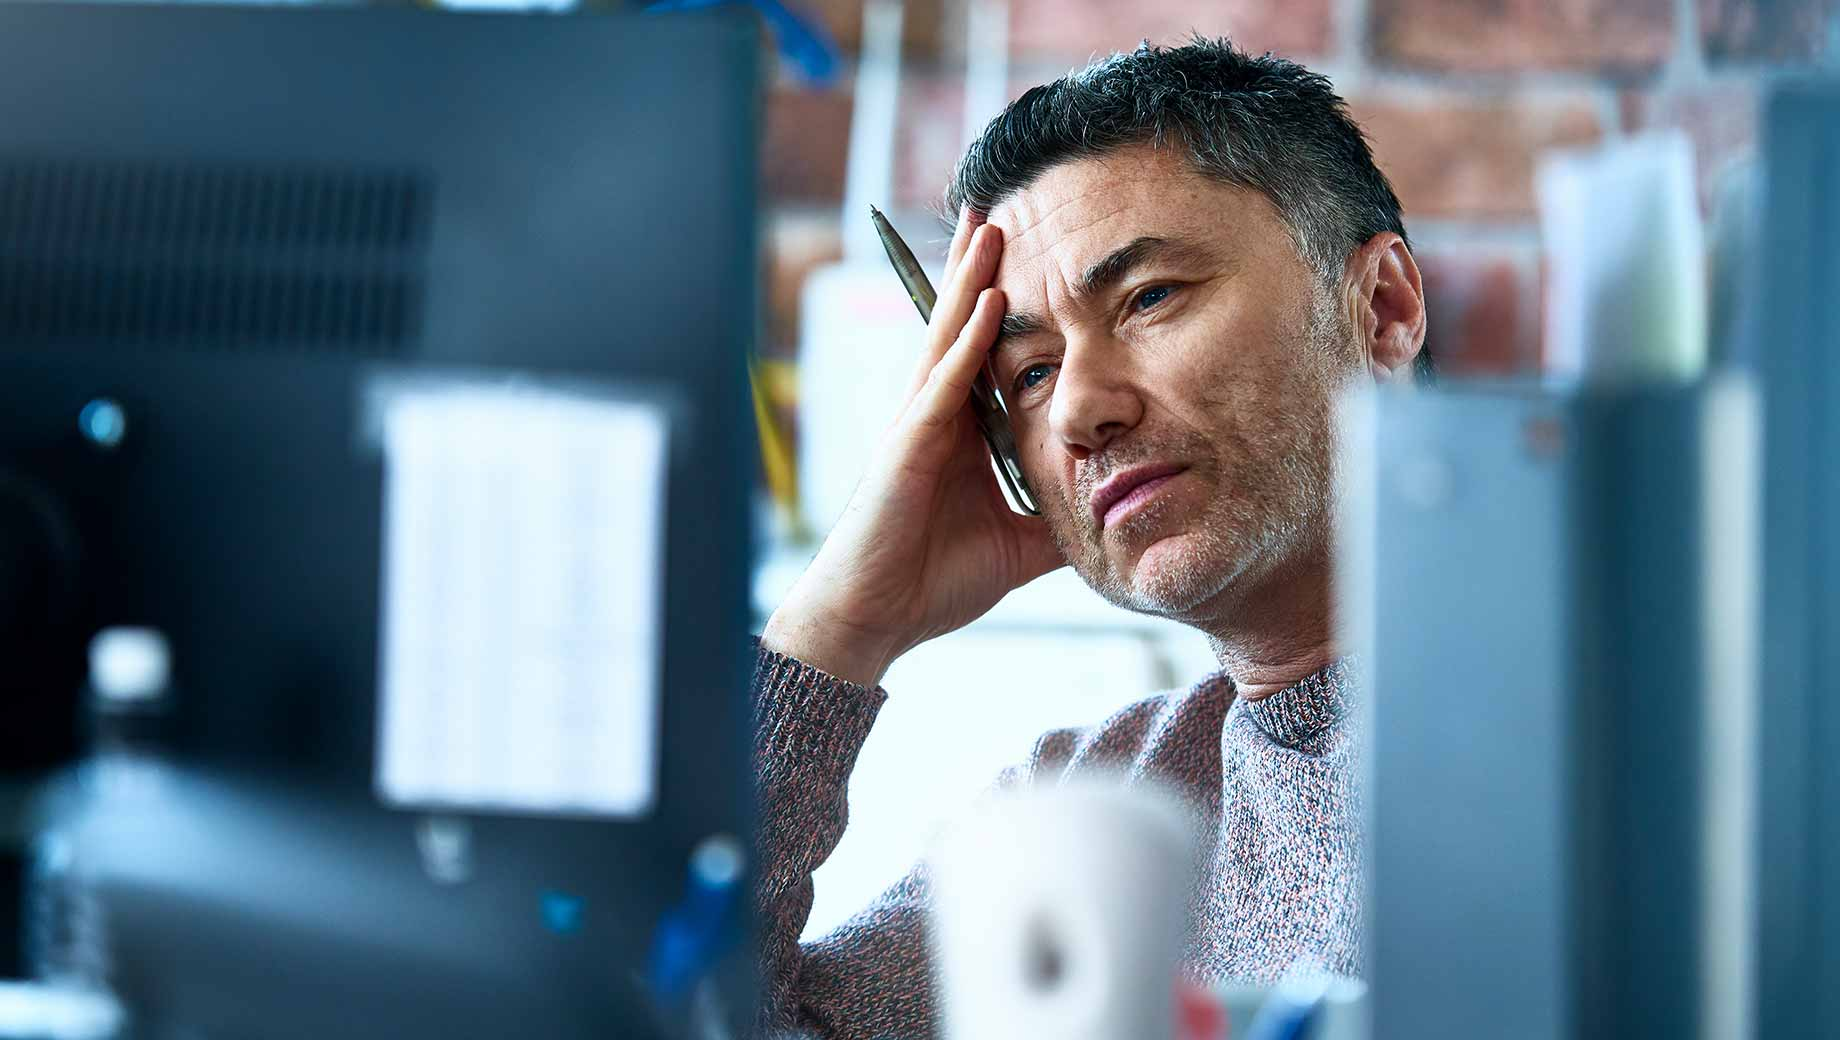 A man in front of his computer looking stressed and burnt out at work